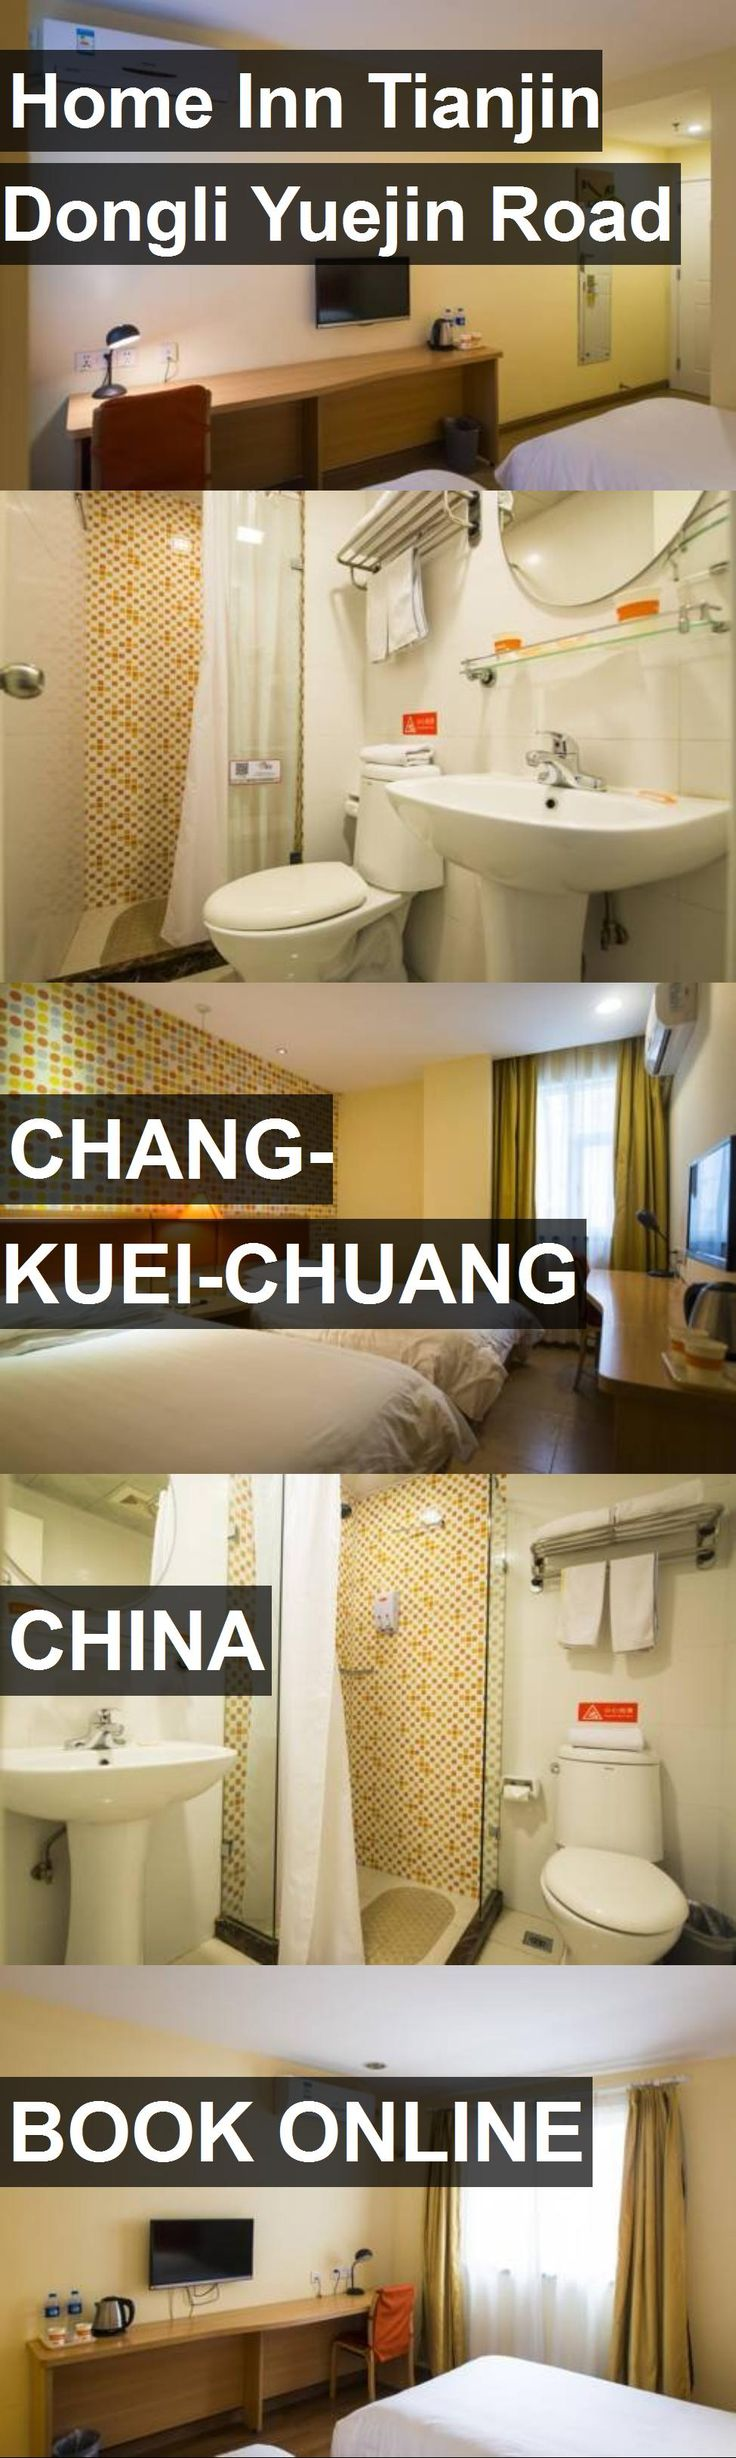 Hotel Home Inn Tianjin Dongli Yuejin Road in Chang-kuei-chuang, China. For more information, photos, reviews and best prices please follow the link. #China #Chang-kuei-chuang #travel #vacation #hotel